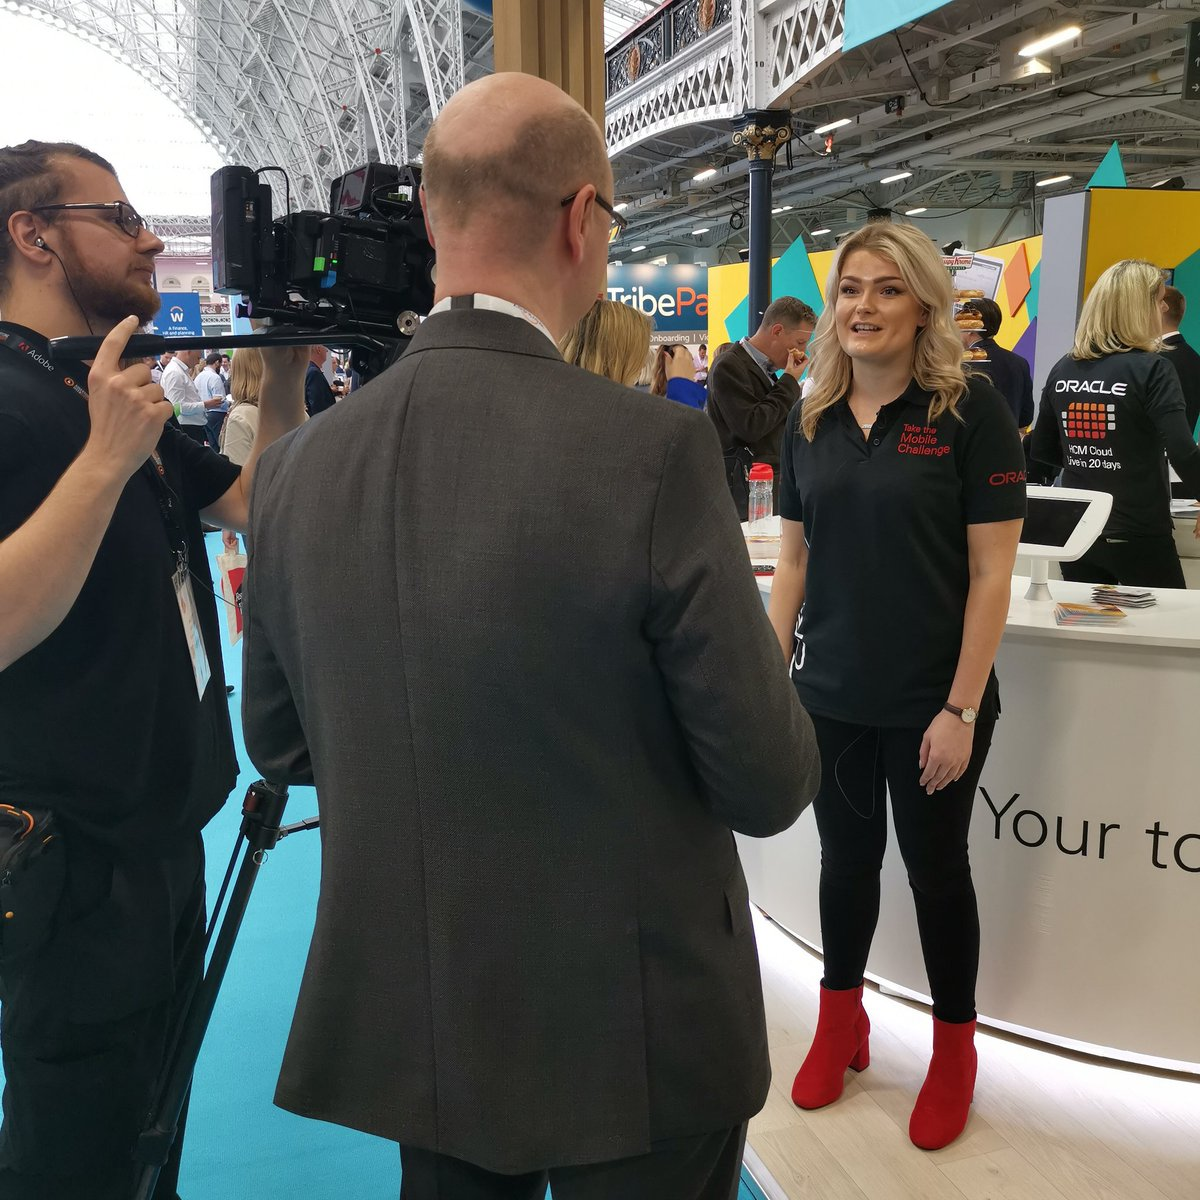 Stealing time with @OracleCloud at #FestivalOfWork - and loving how the team is on brand today!👌 Visit their stand B130 to learn more about Oracle HCM Cloud